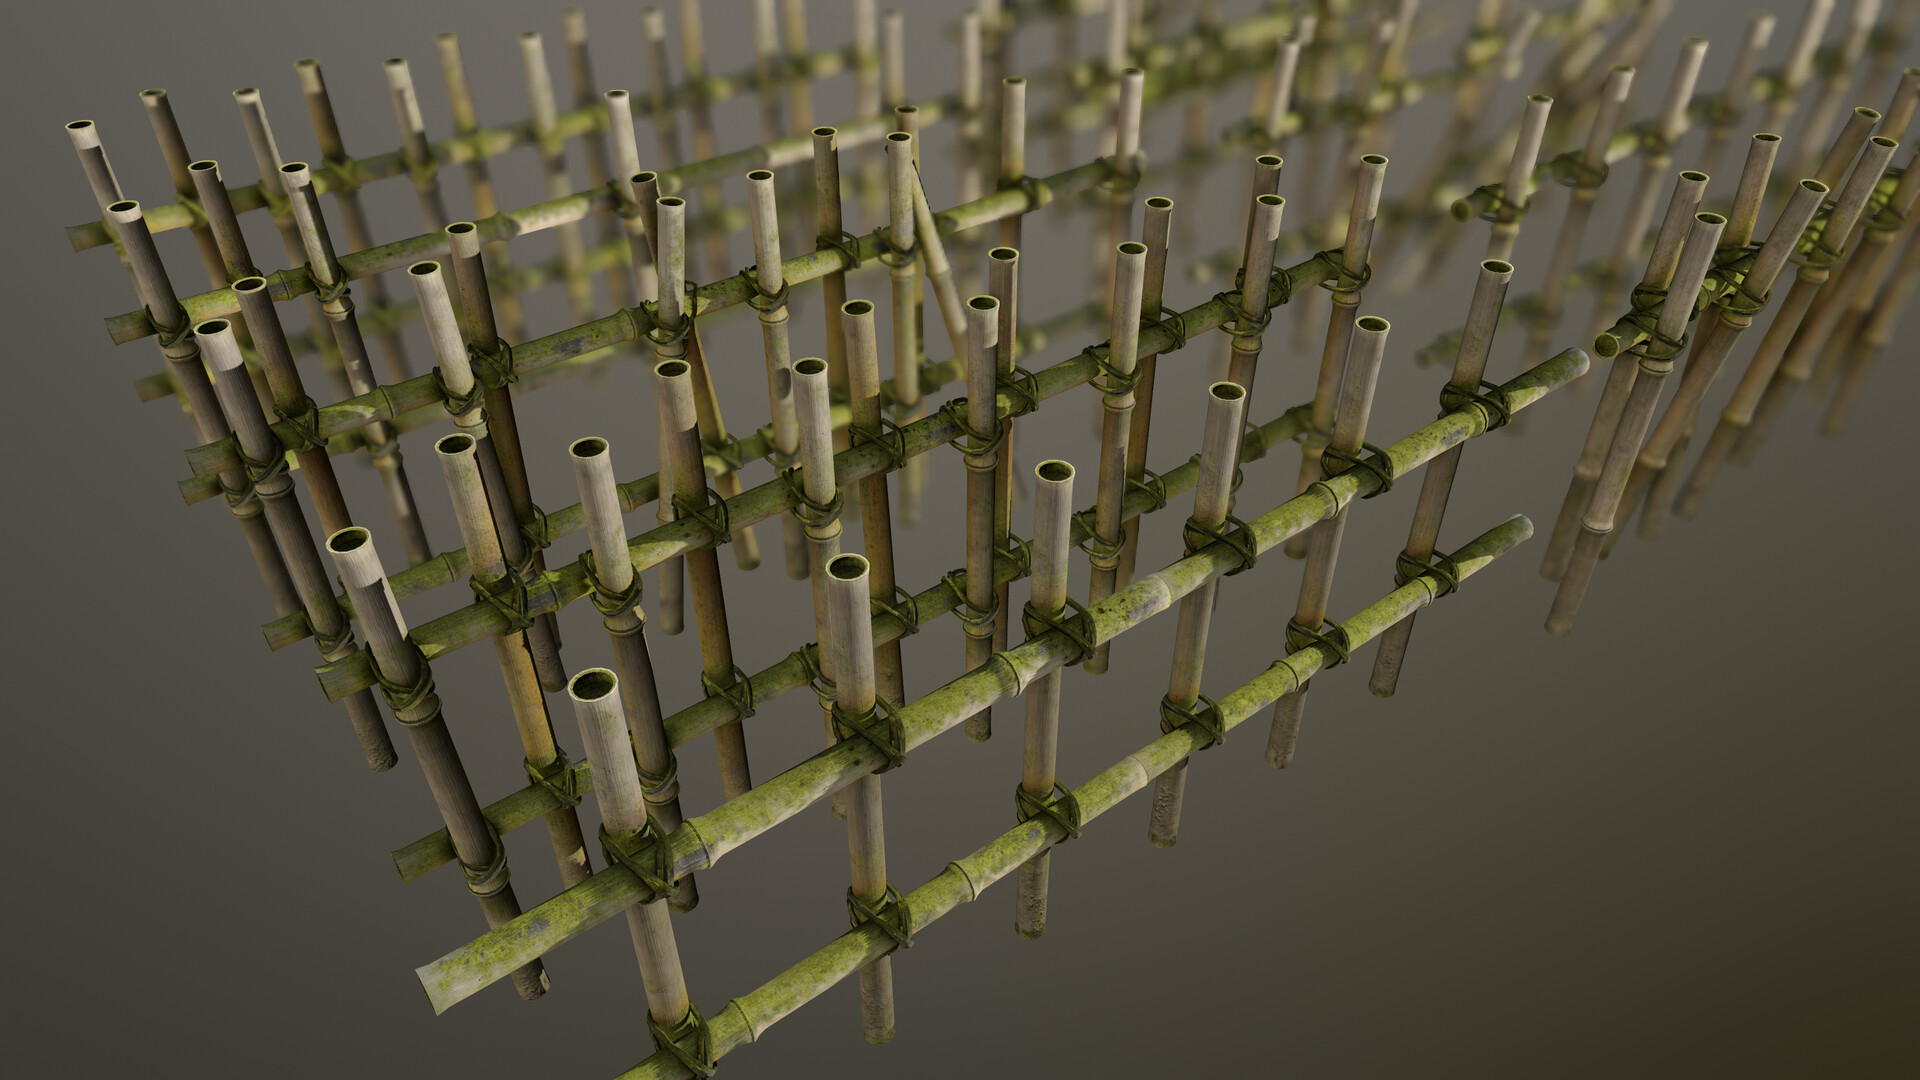 A render of the rain-slick, moldy fence in Marmoset Toolbag 3.